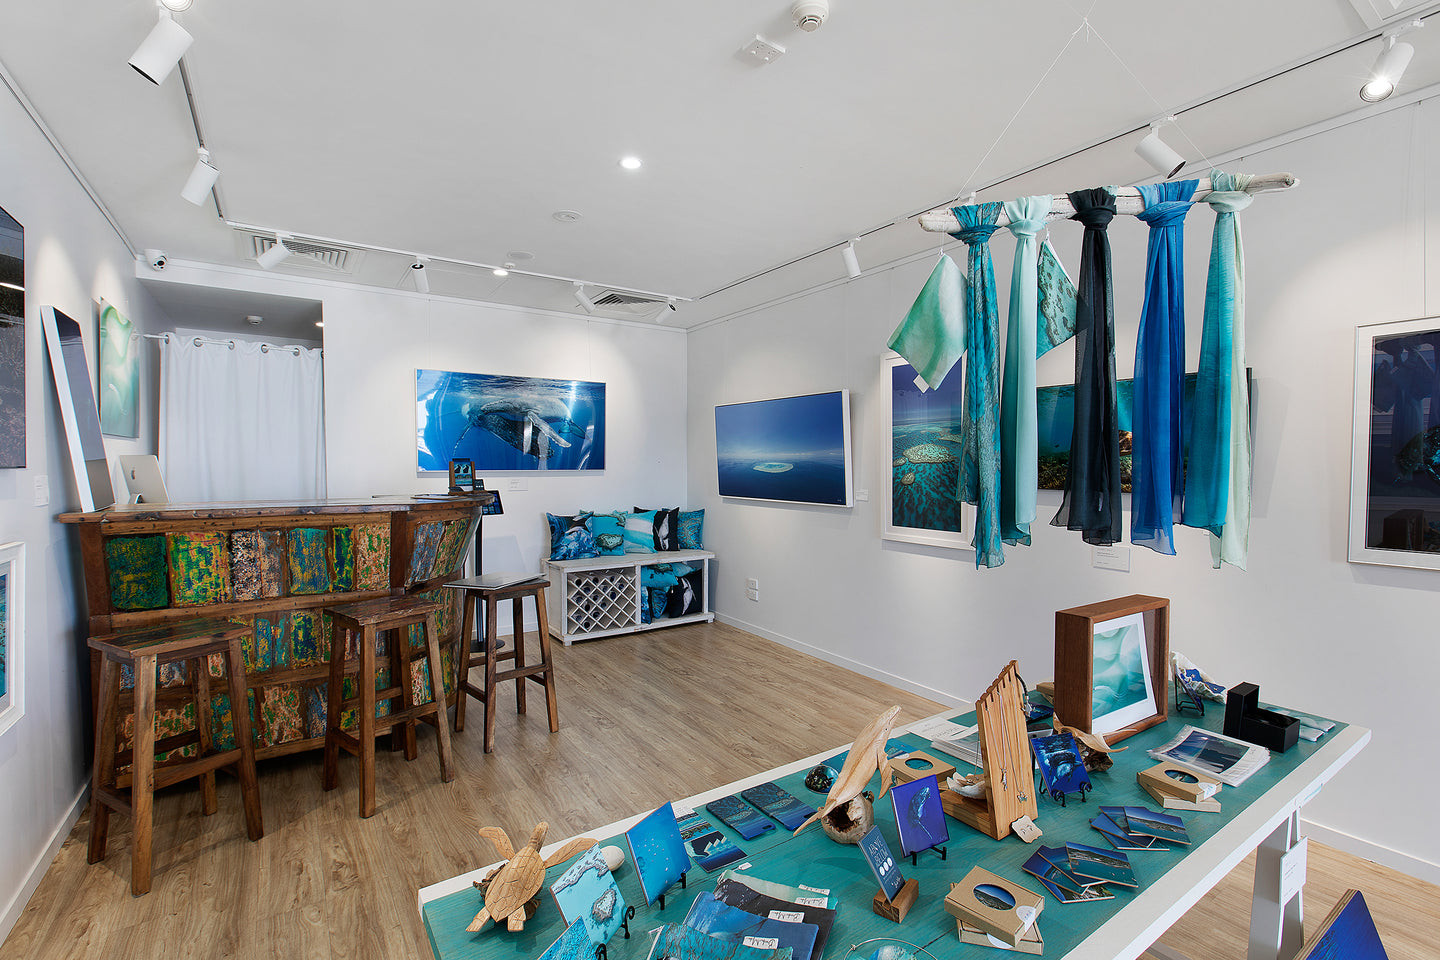 airlie beach gallery whitsundays